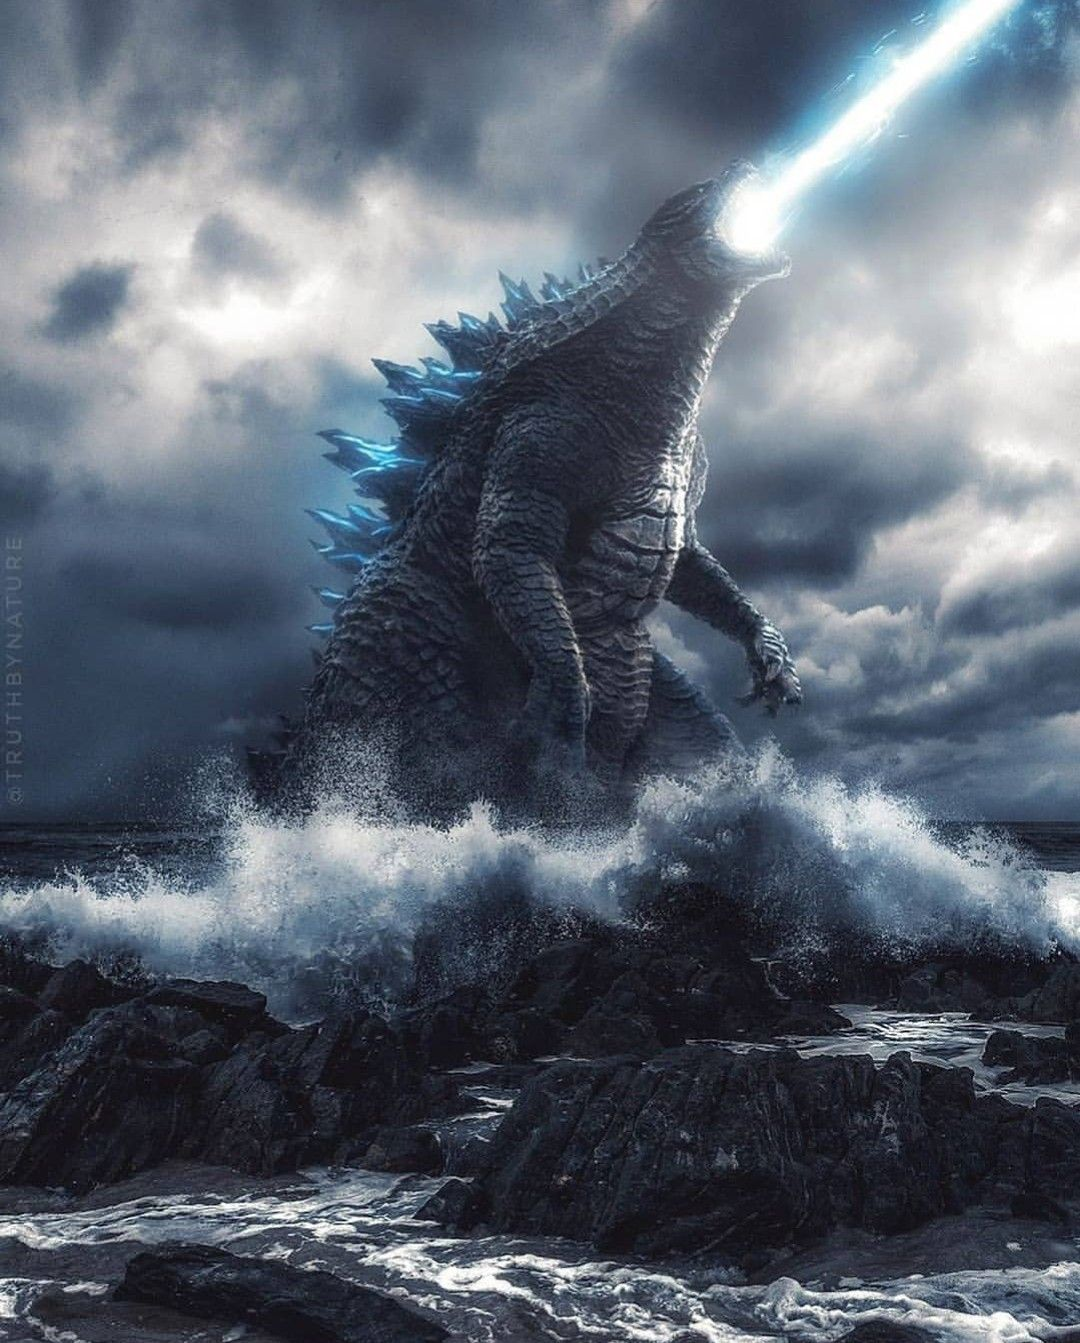 Pin by Phil Warwick on Cinematic in 2020 Godzilla